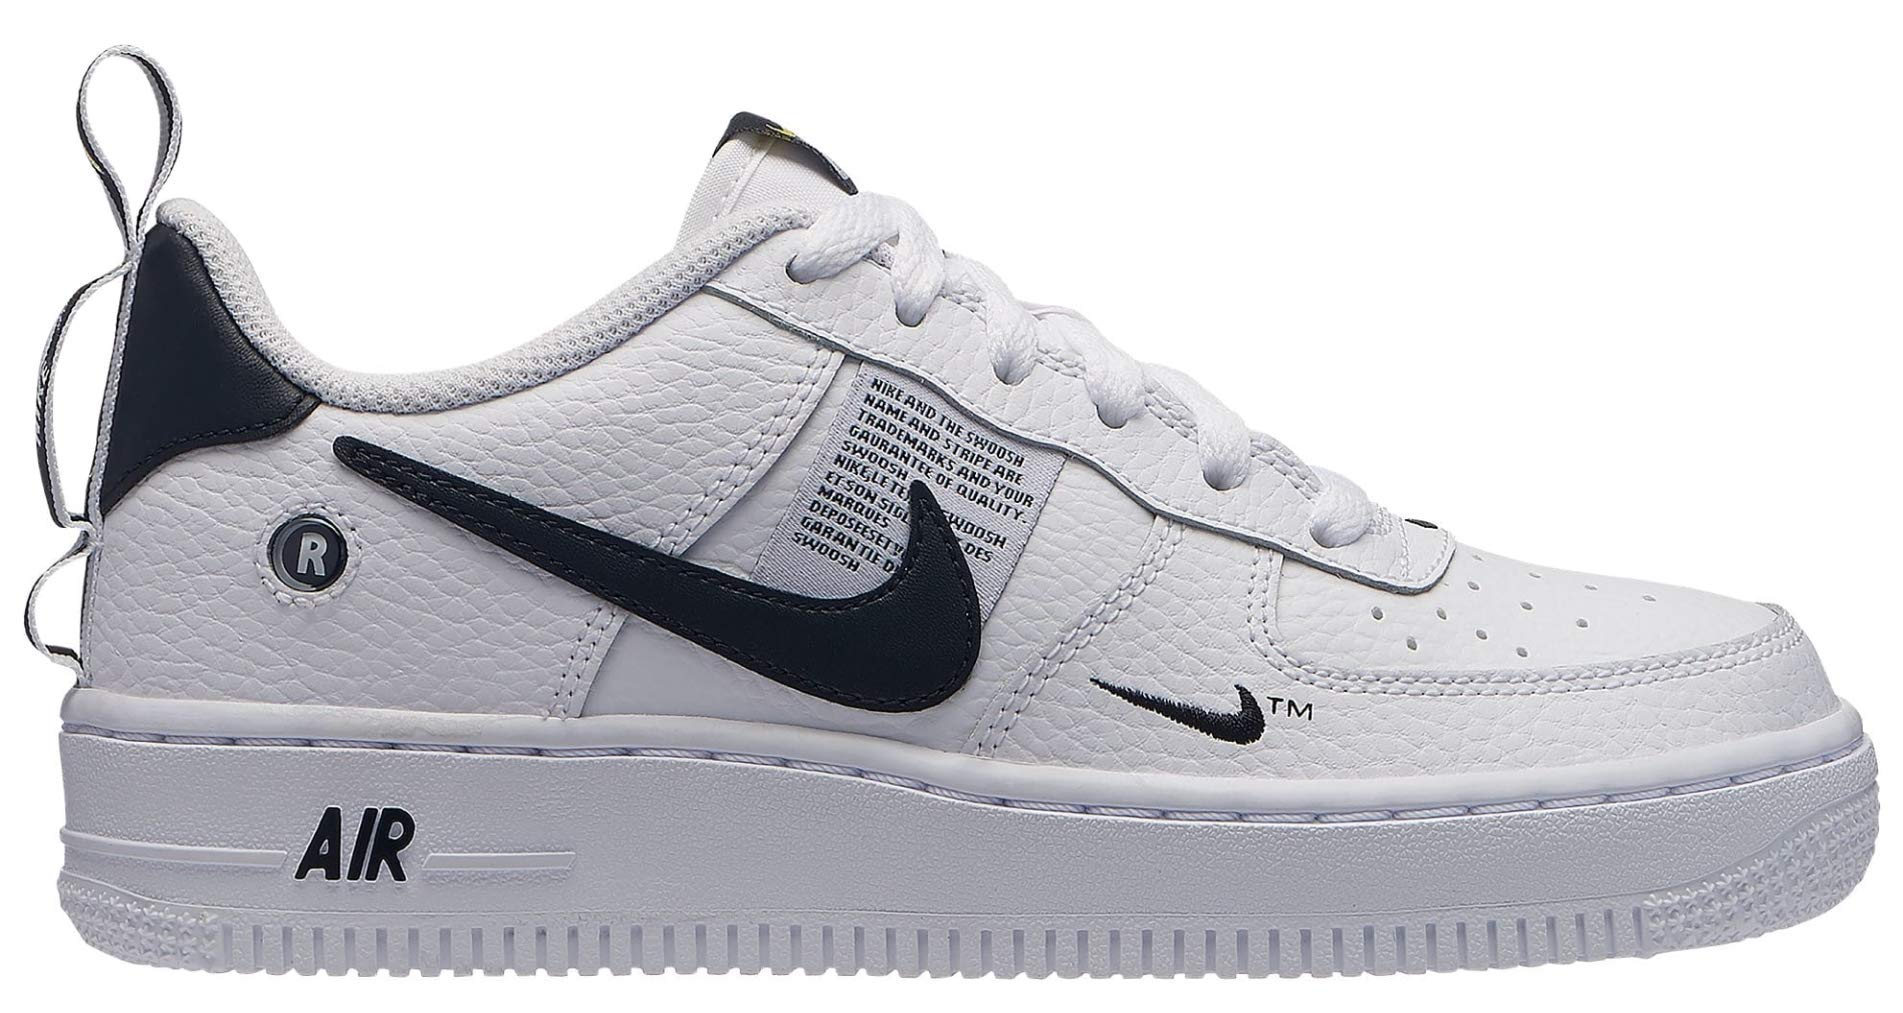 new concept 907ca b6823 Galleon - NIKE Air Force 1 Lv8 Utility (gs) Big Kids Ar1708-100 Size 6.5